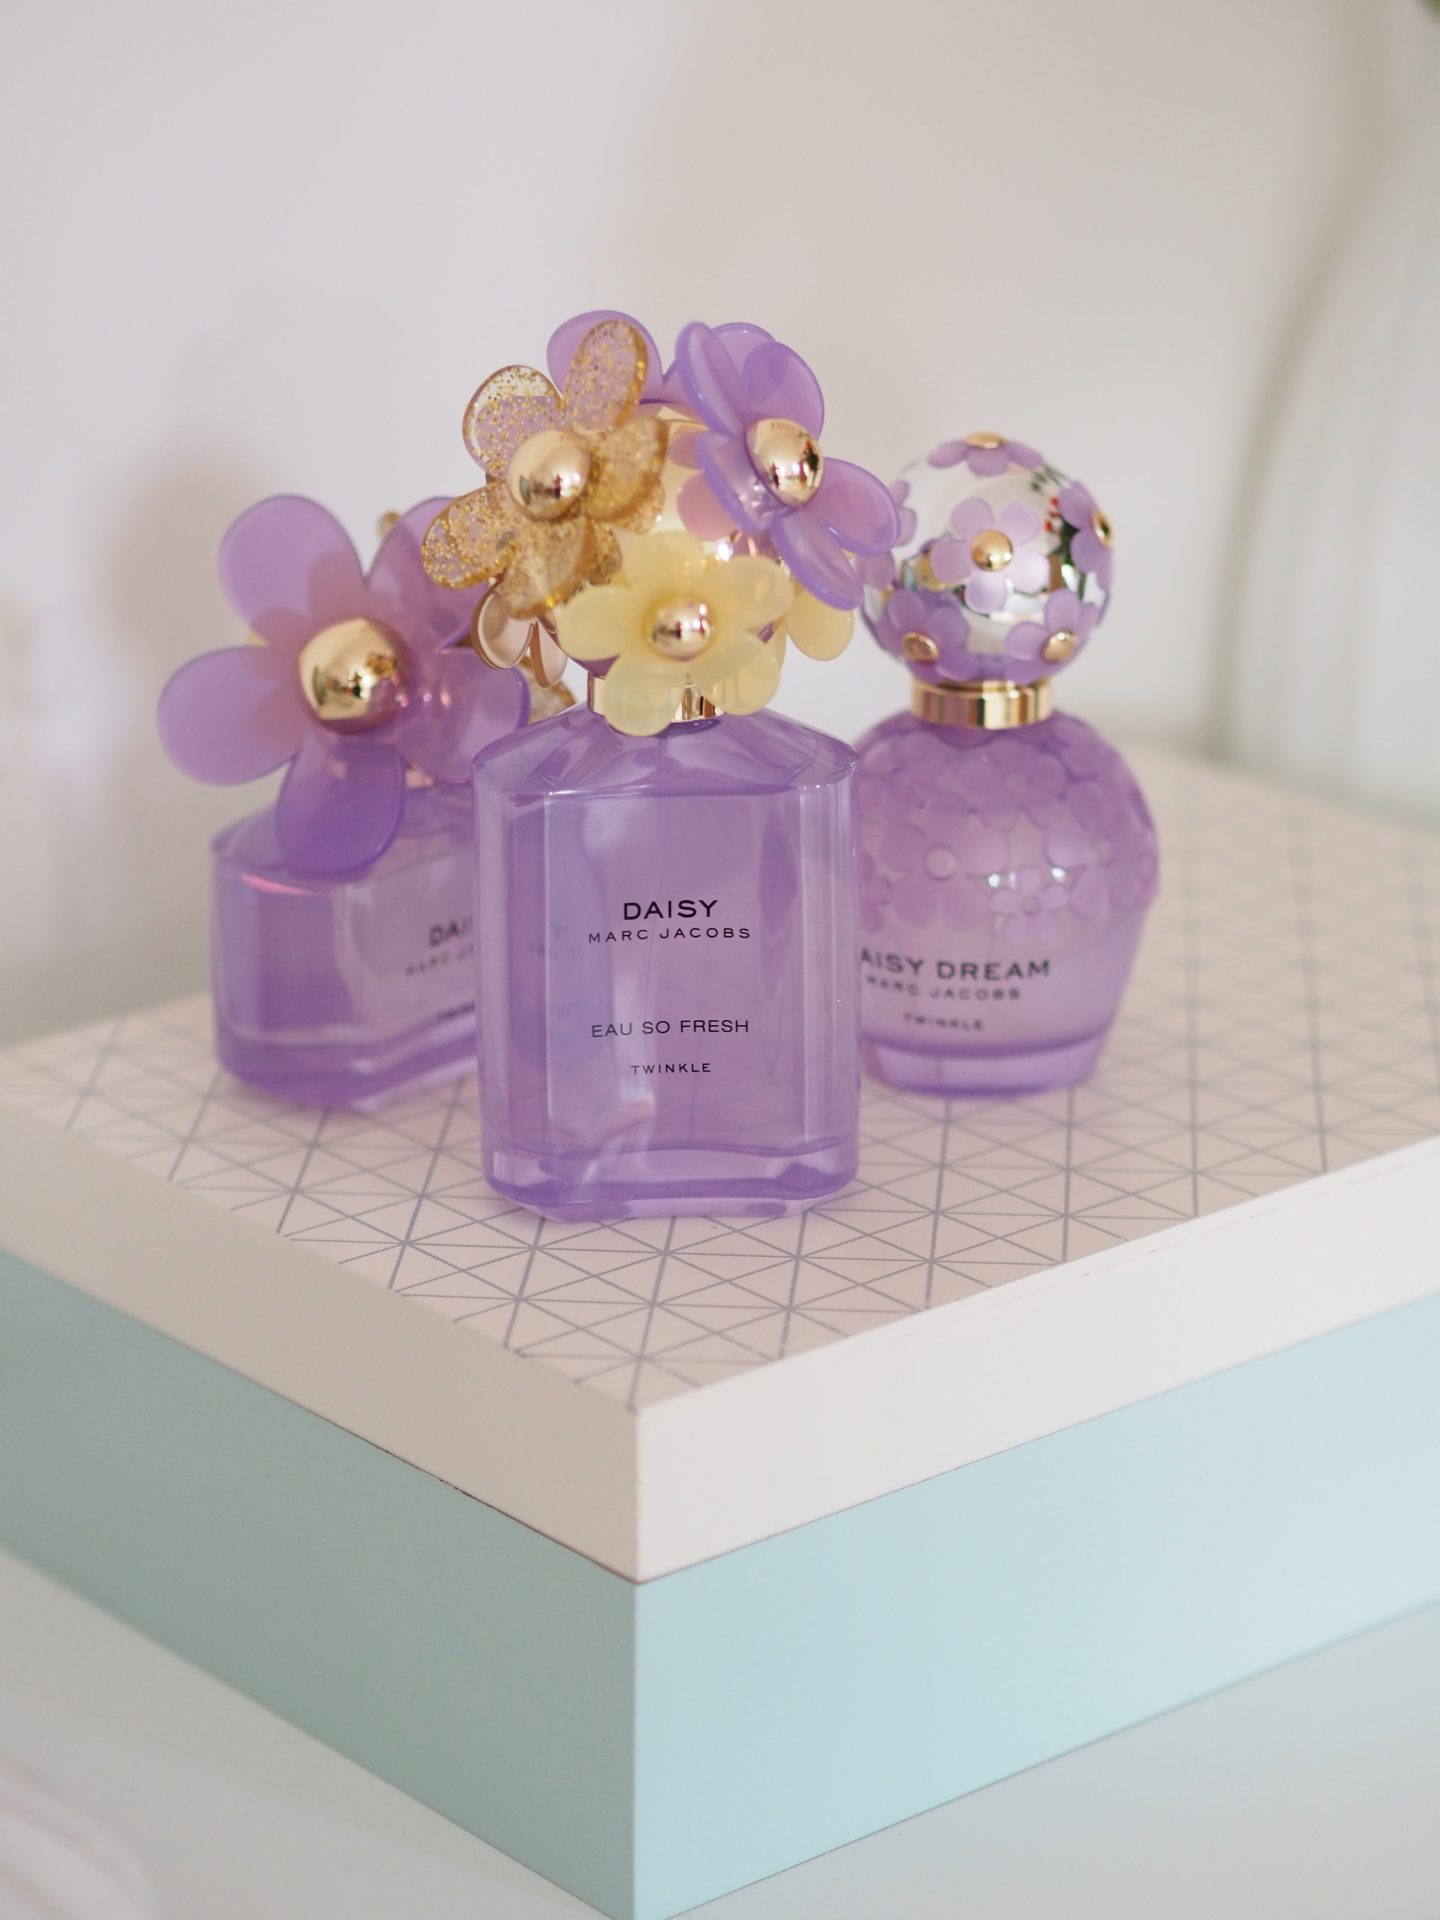 Marc jacobs daisy eau so fresh twinkle edition a beauty junkie in so whilst theres been a few variants of limited edition variants of the daisy family as with this one they often do versions across the whole daisy izmirmasajfo